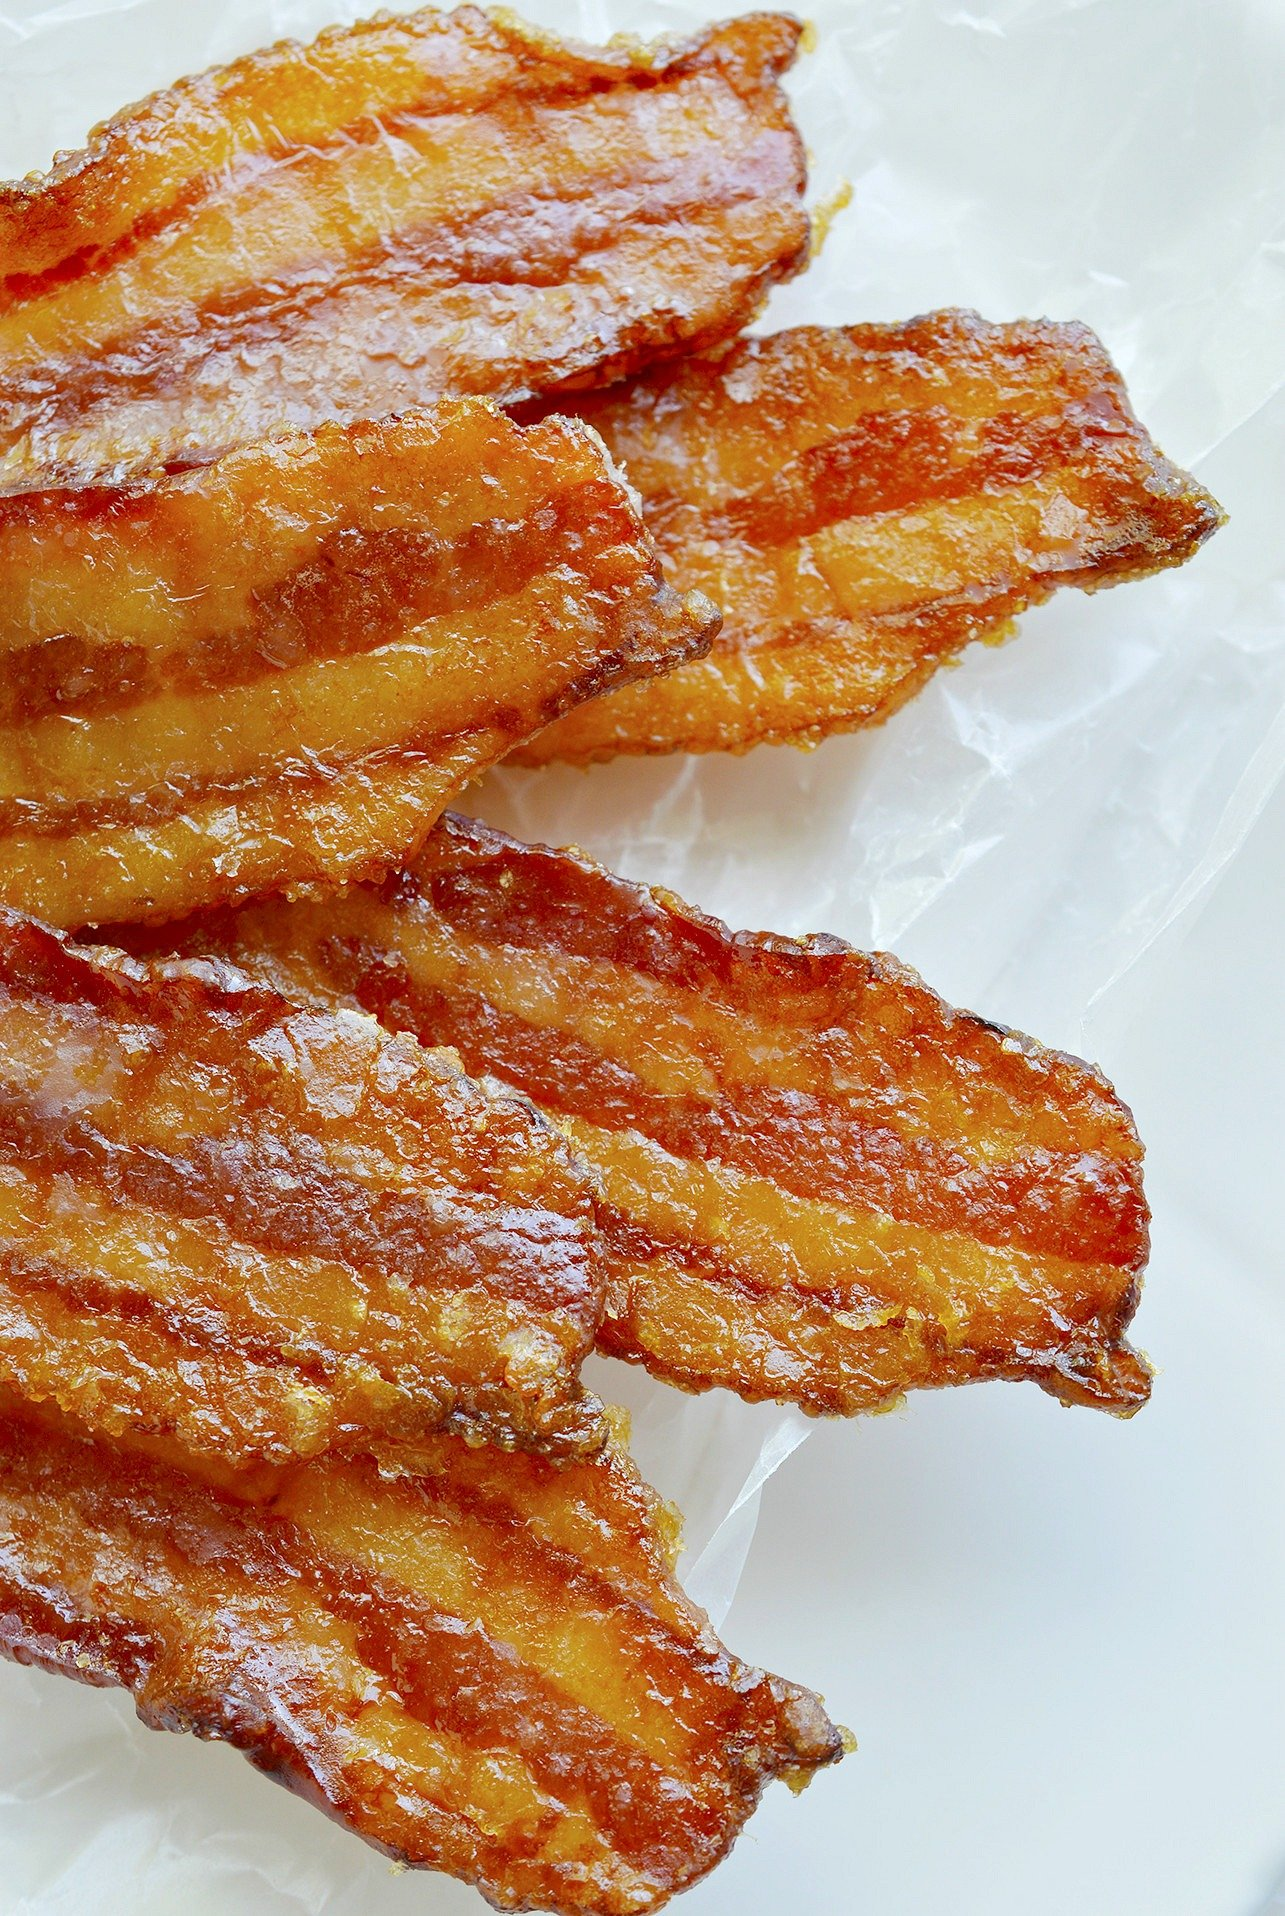 Sugary sweet bacon is the ultimate indulgent treat! This Brown Sugar Maple Bacon Recipe has the best of sweet and salty. Candied bacon will change your life! It is that good.